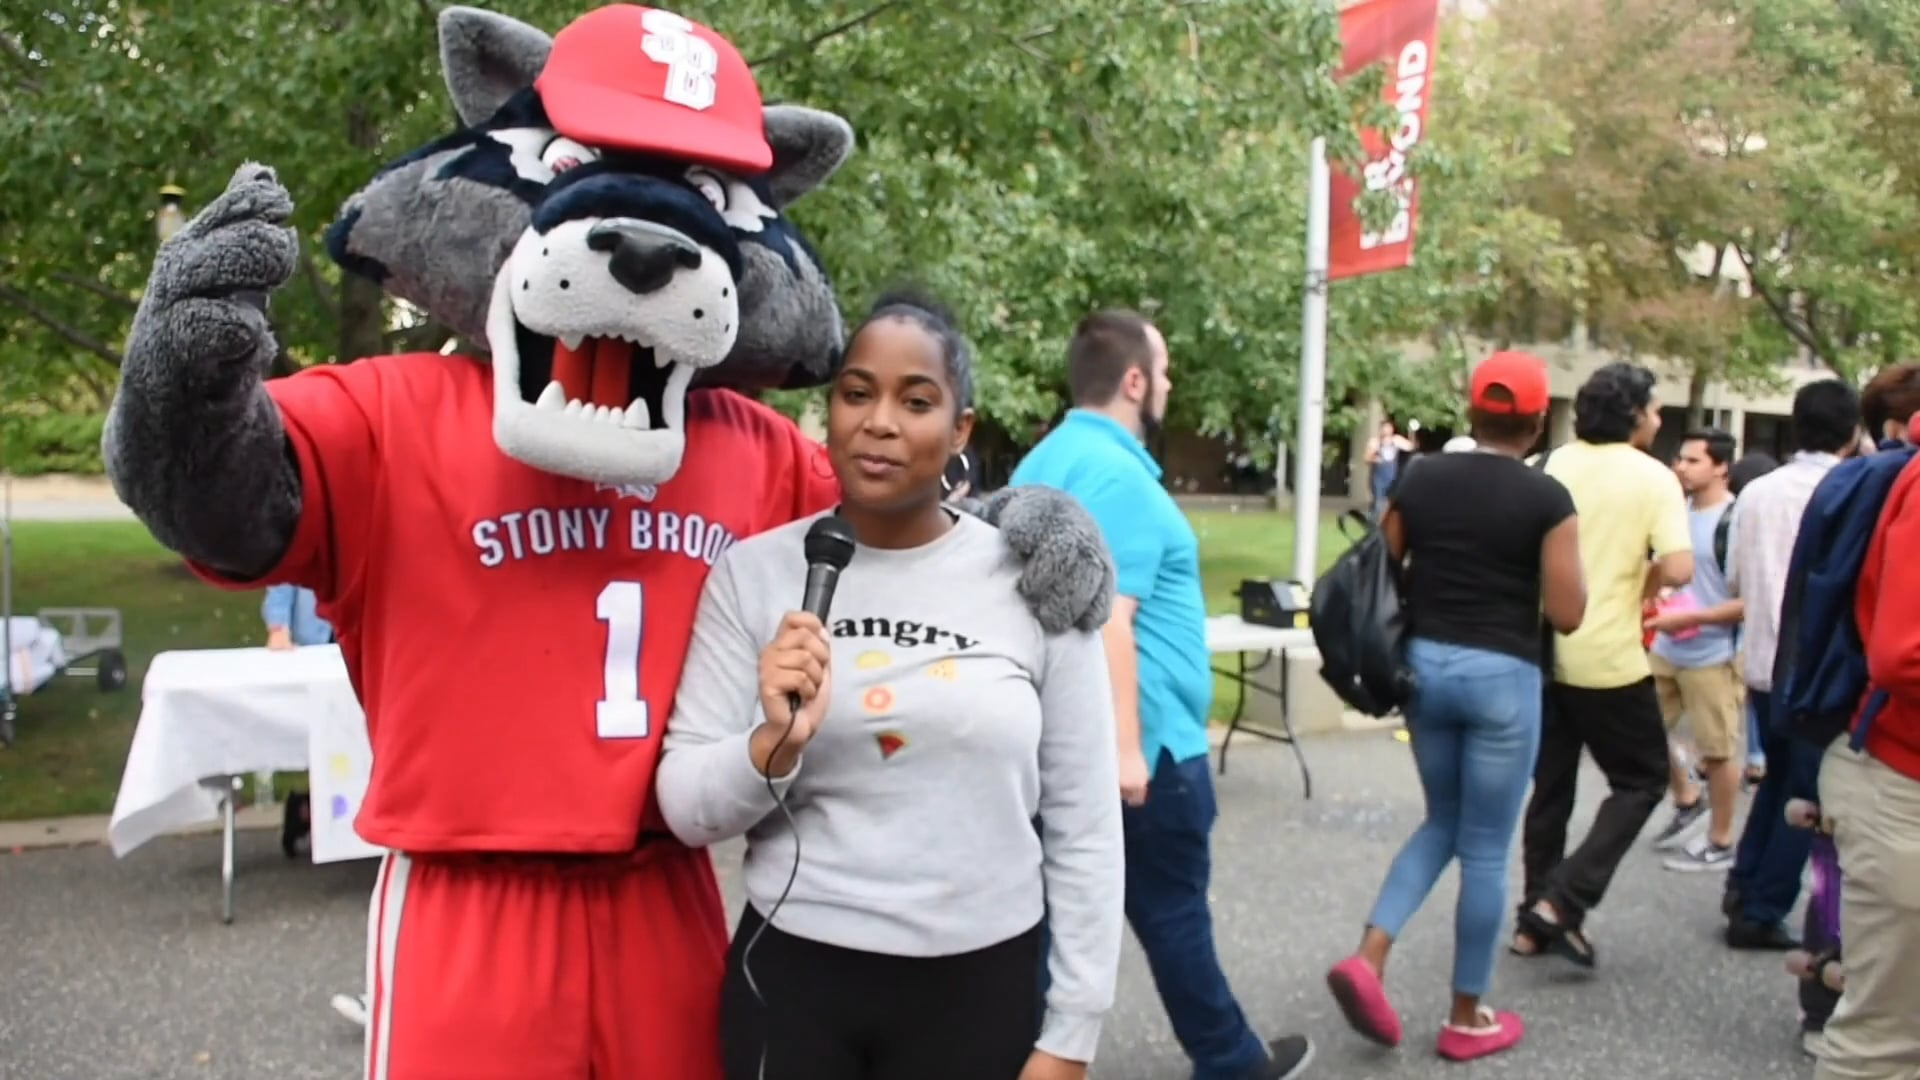 Stony Brook News: Homecoming Hoopla